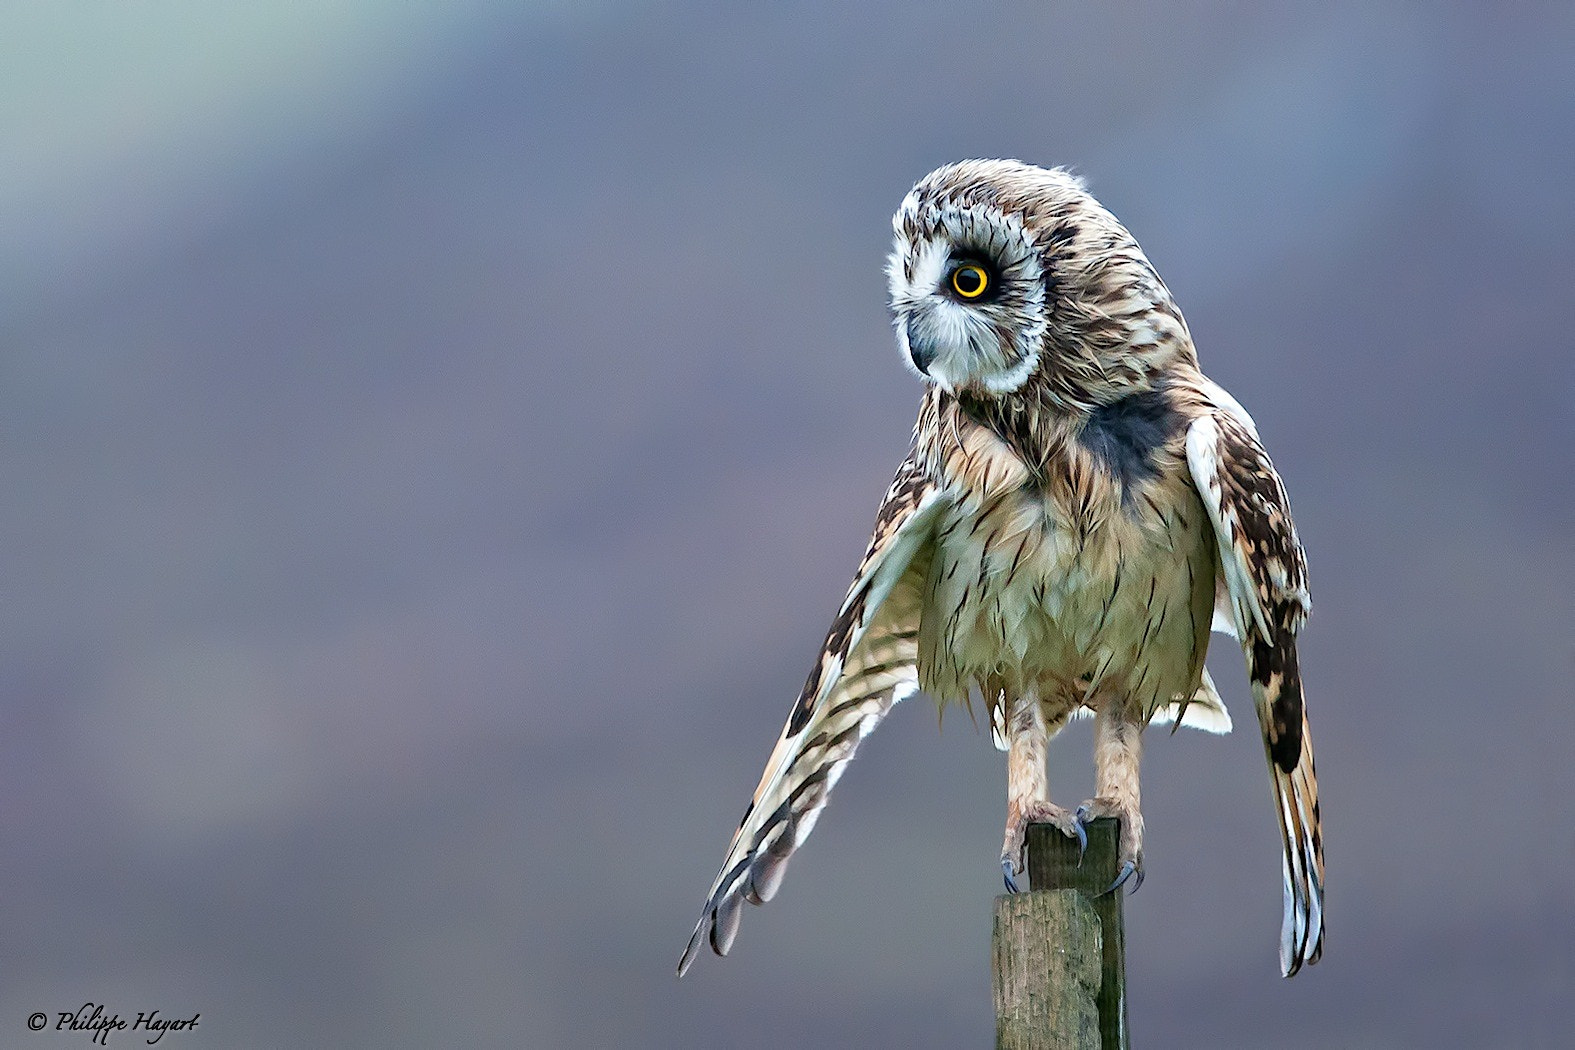 Photograph Short-eared owl in Scotland by Philippe Hayart on 500px